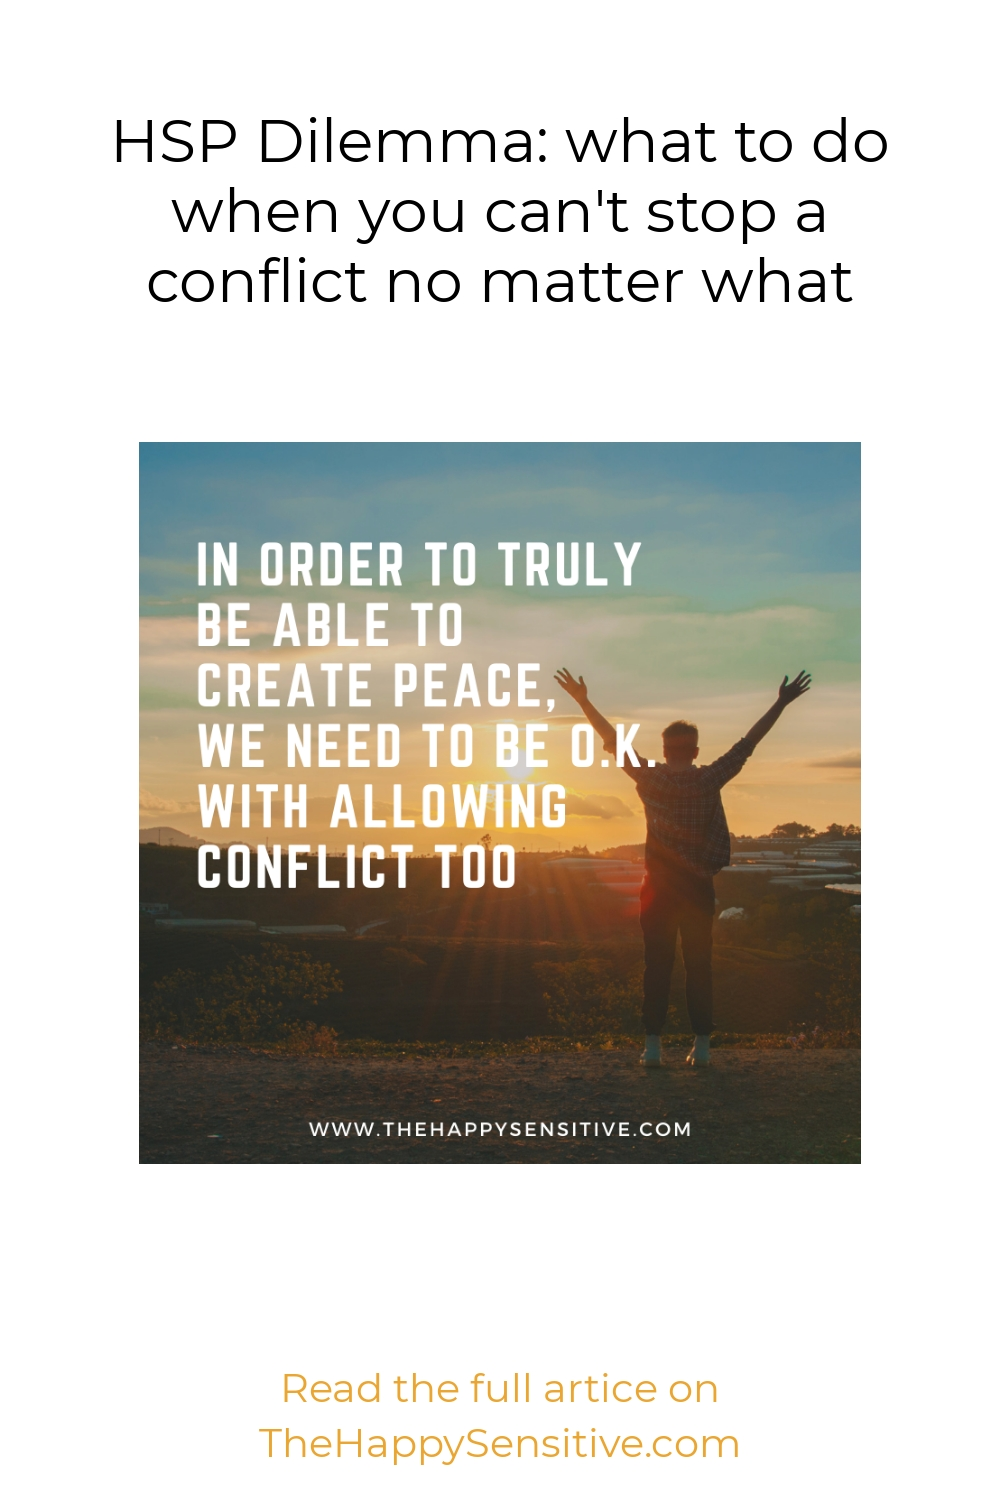 HSP Dilemma: what to do when you can't stop a conflict no matter what